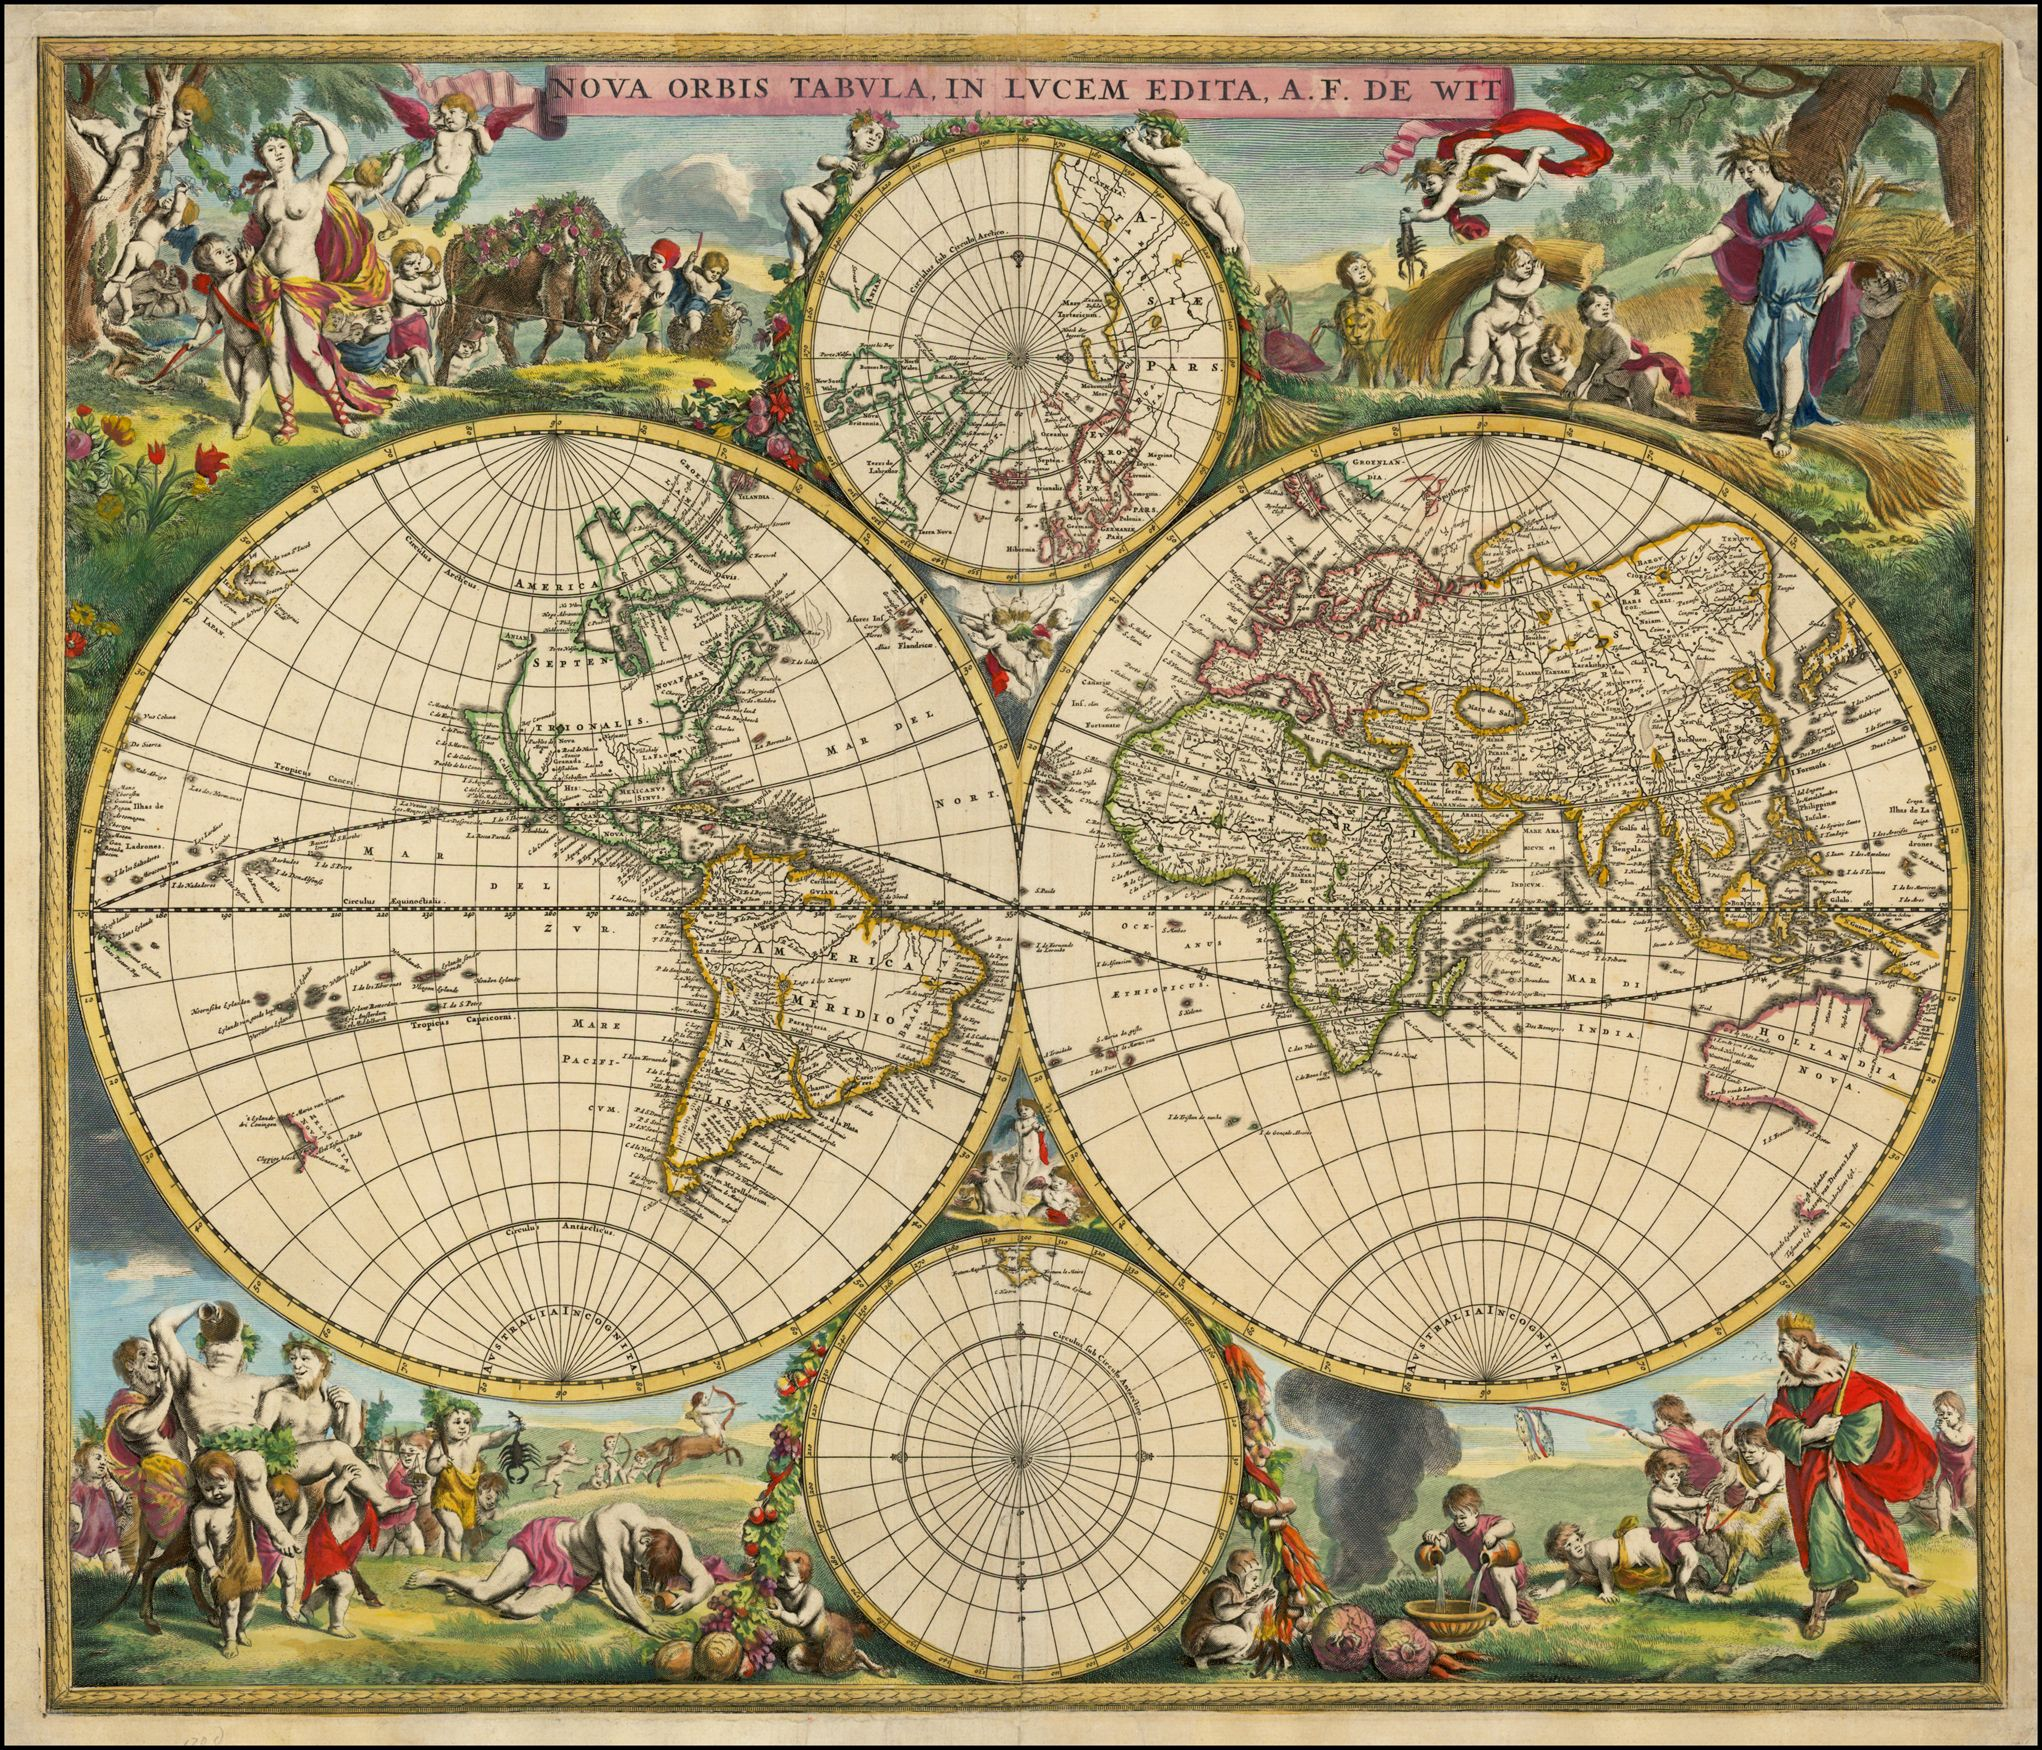 Pin by datagram one on old maps pinterest explore world atlas map old maps and more gumiabroncs Gallery